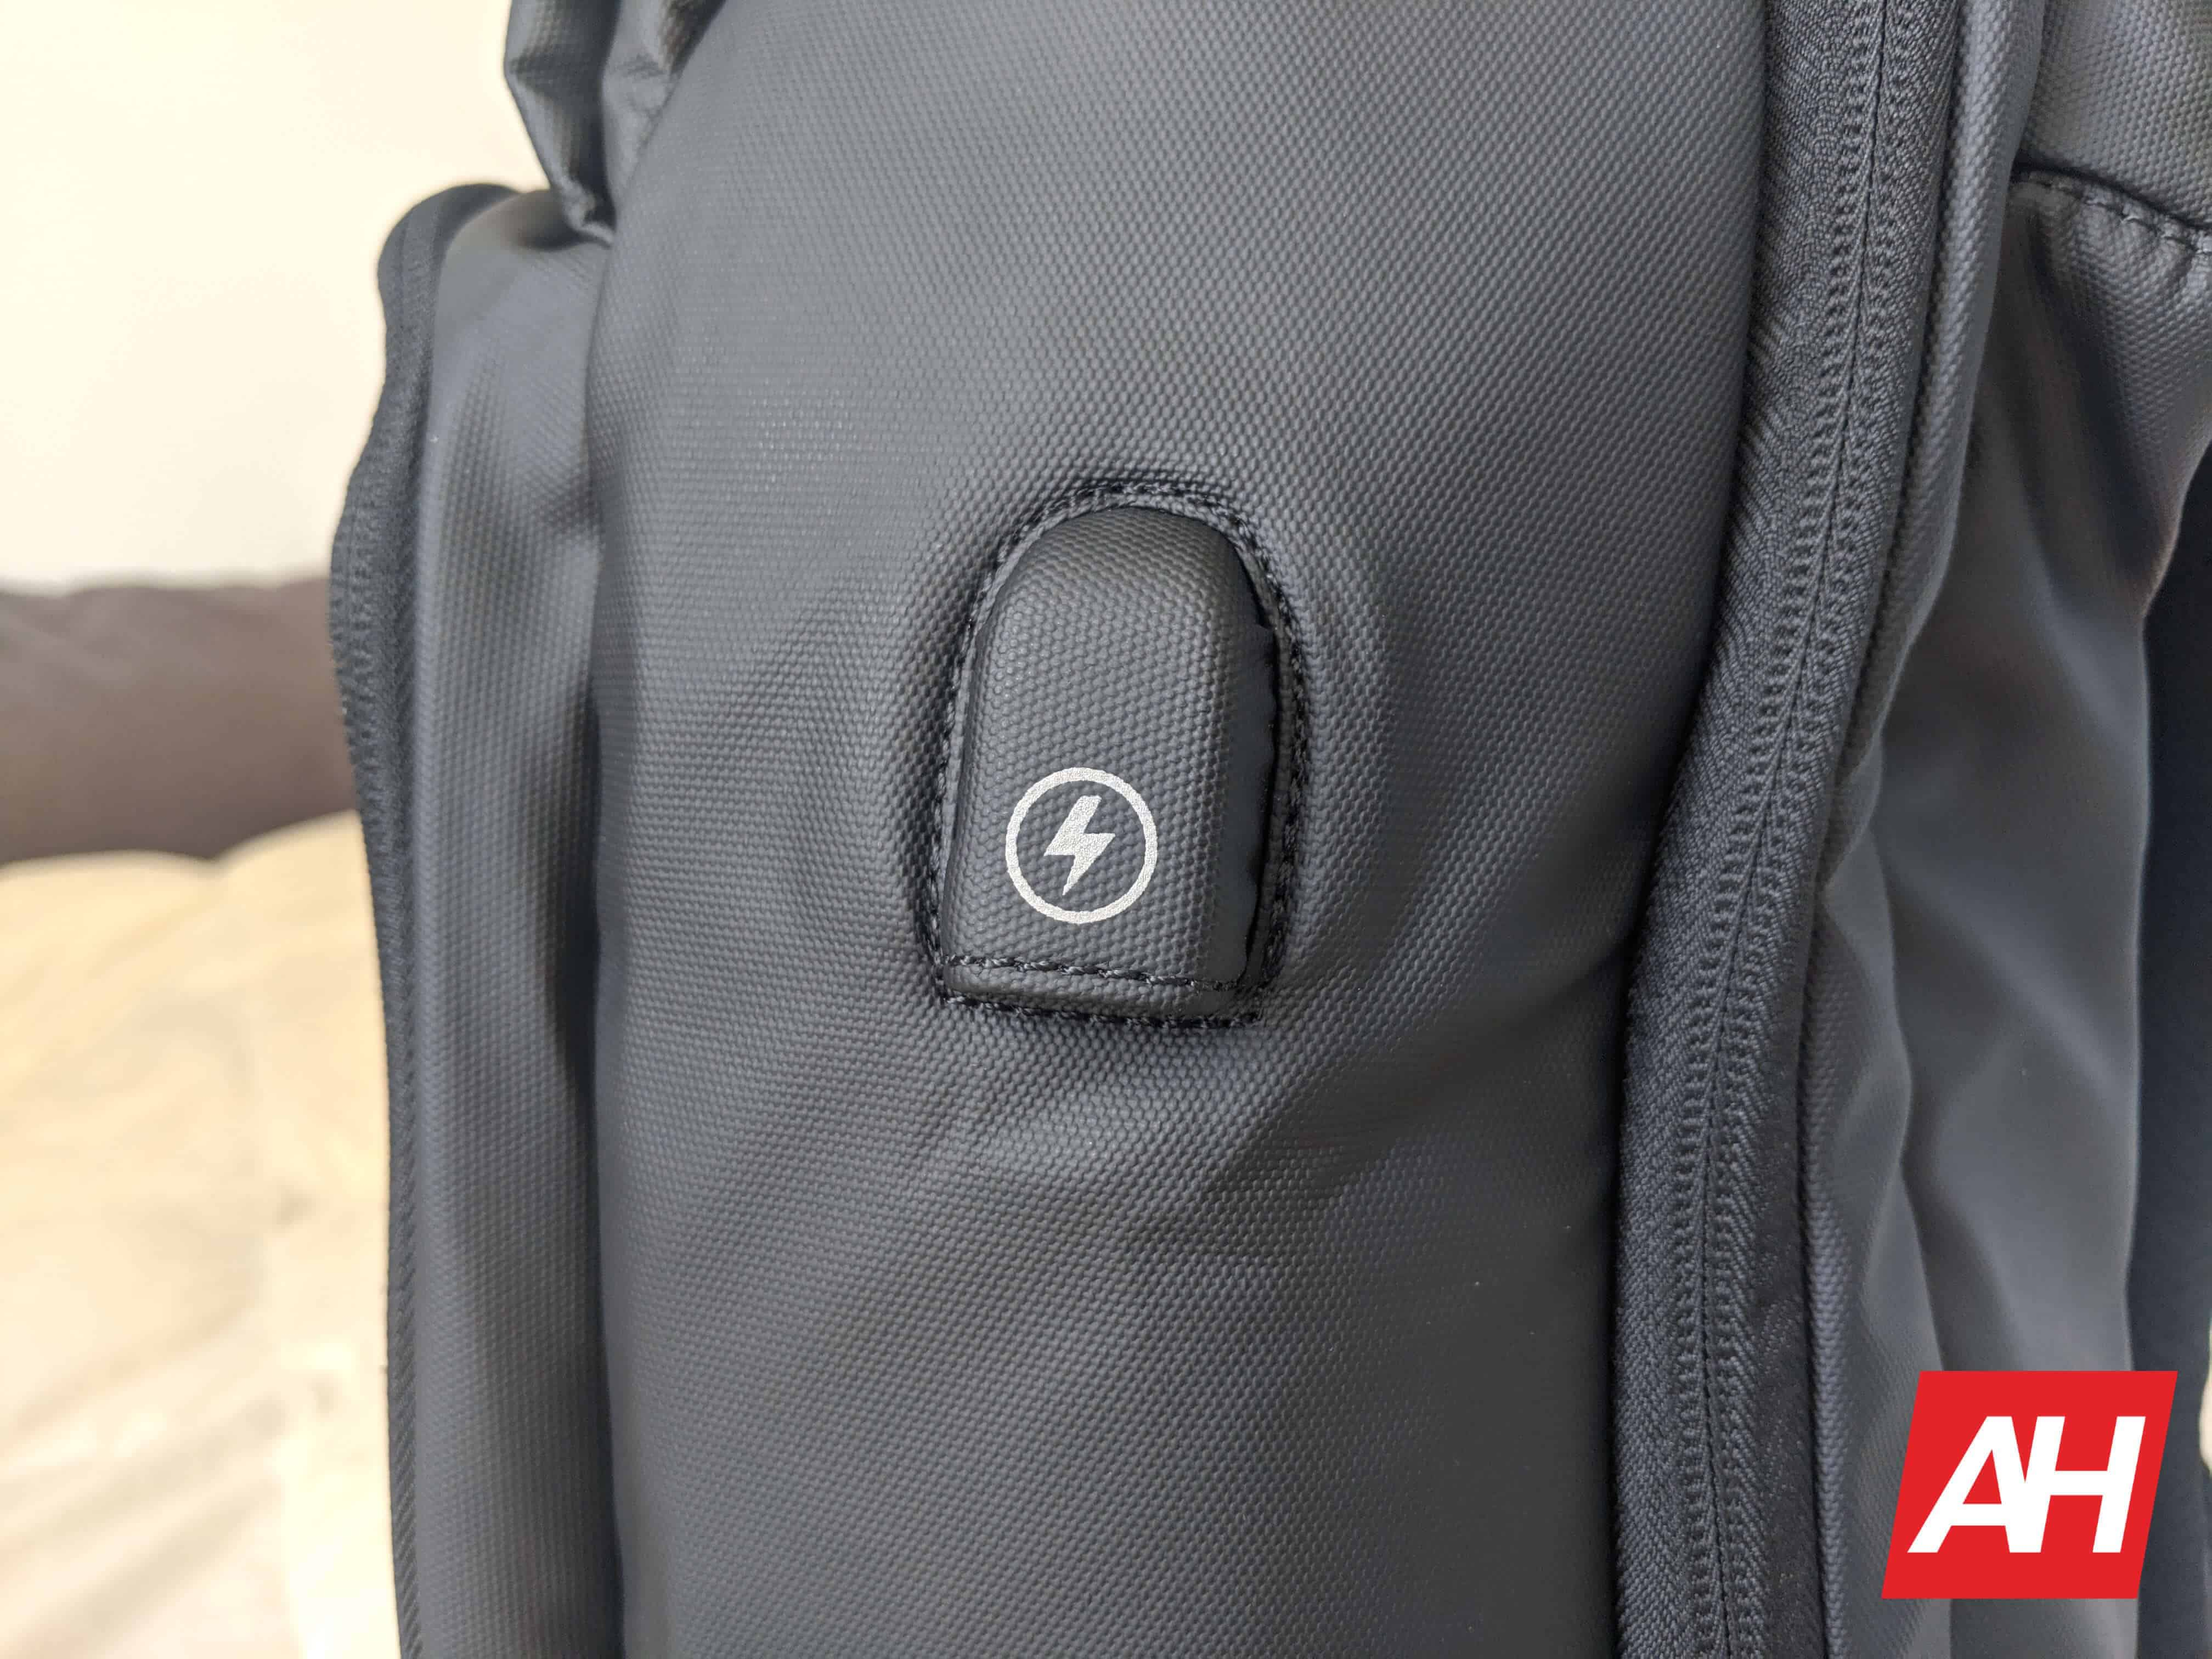 Nayo Smart Almighty Backpack Review 11